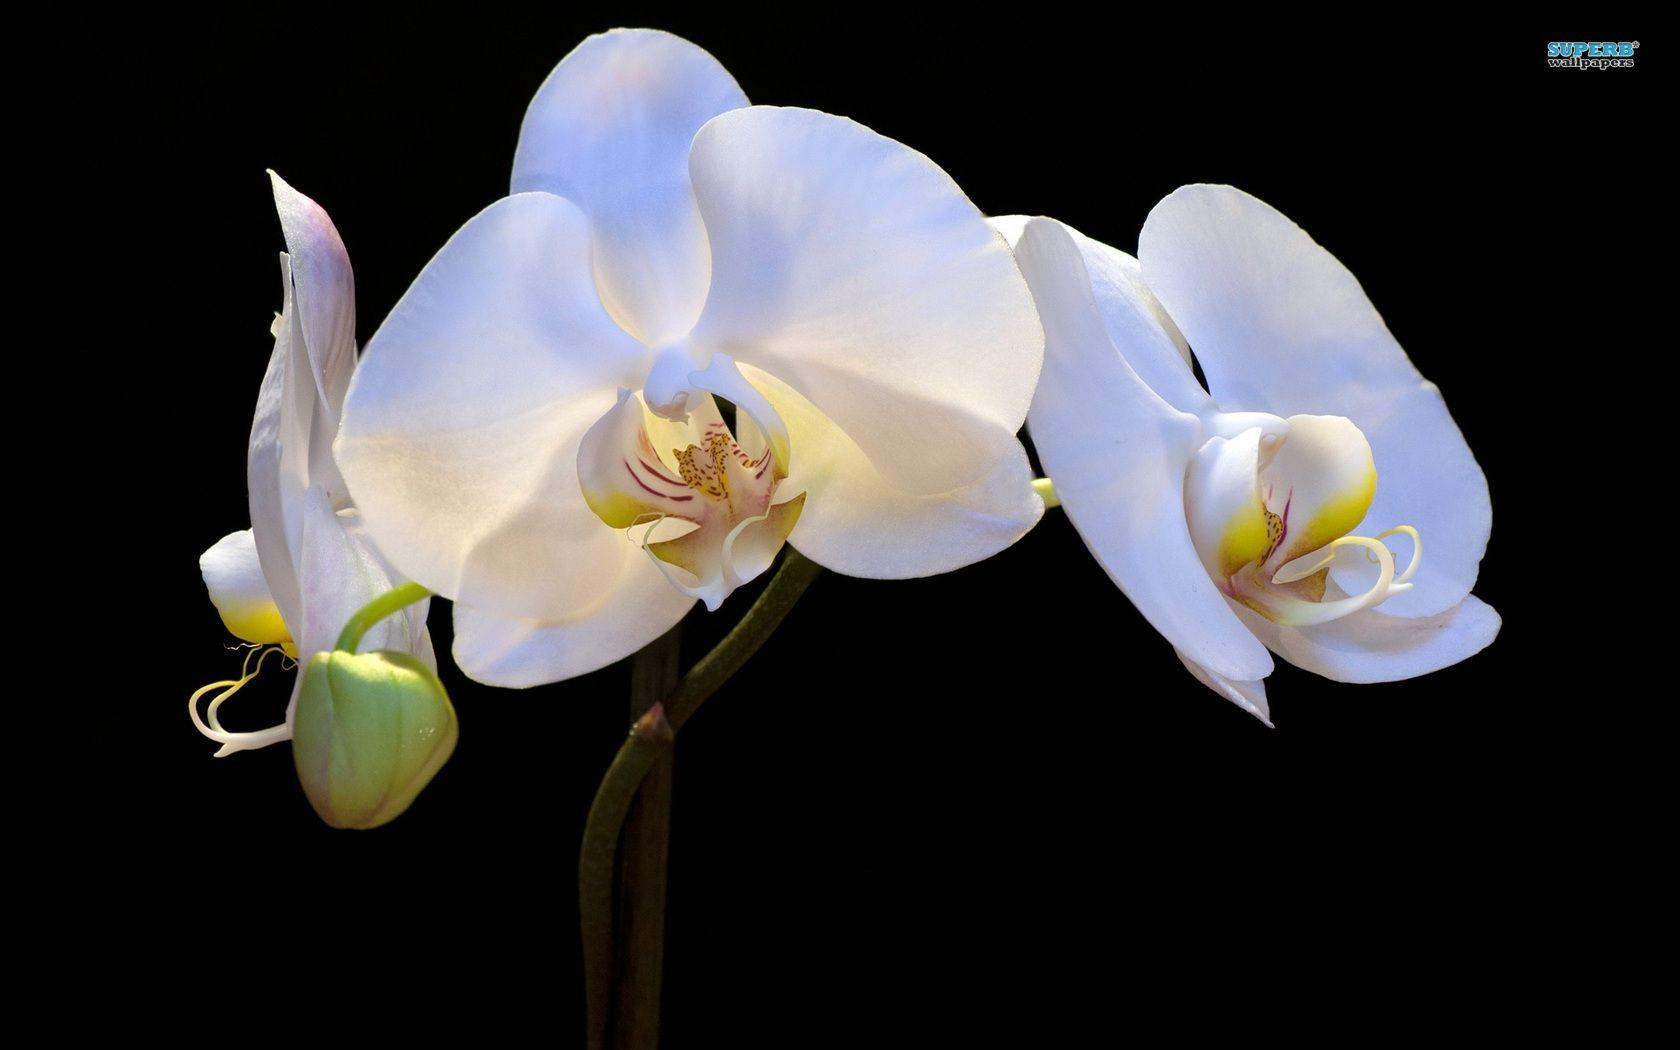 orchid wallpapers backgrounds images - photo #11